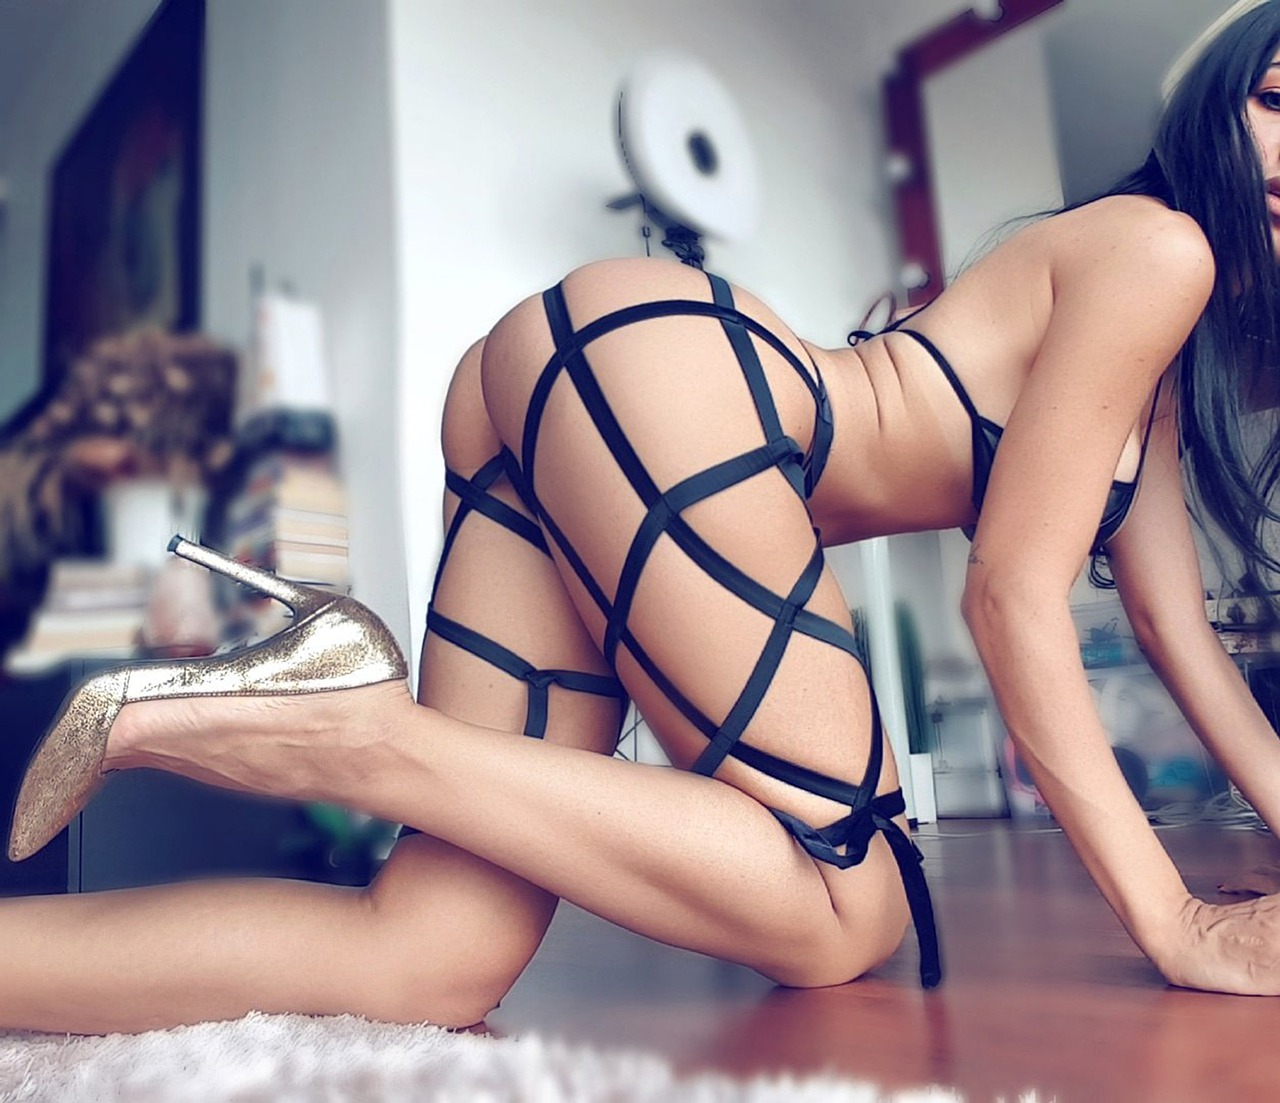 Local Escort Services Suggestions